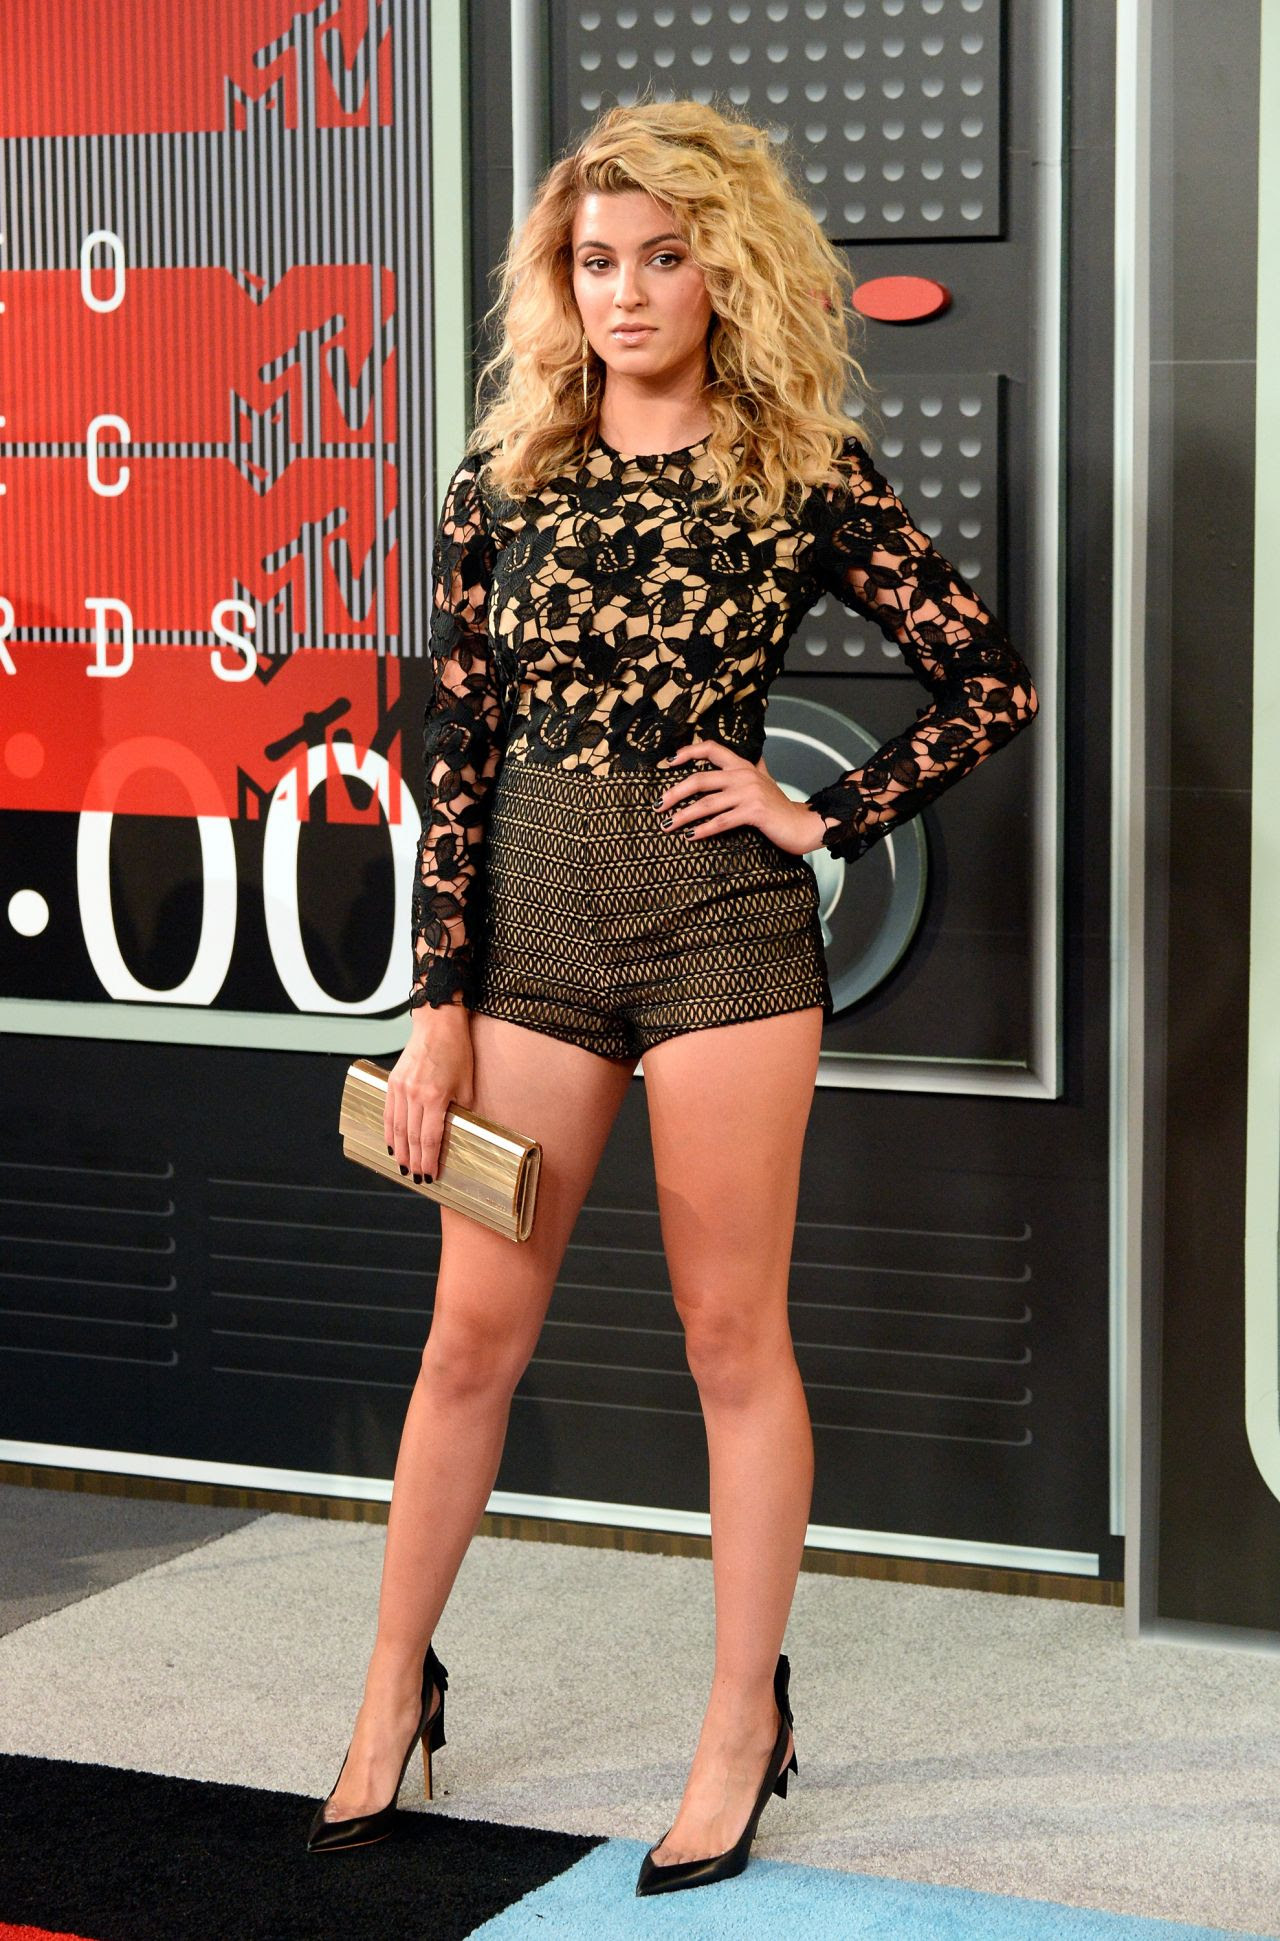 http://celebmafia.com/wp-content/uploads/2015/08/tori-kelly-2015-mtv-video-music-awards-at-microsoft-theater-in-los-angeles_2.jpg